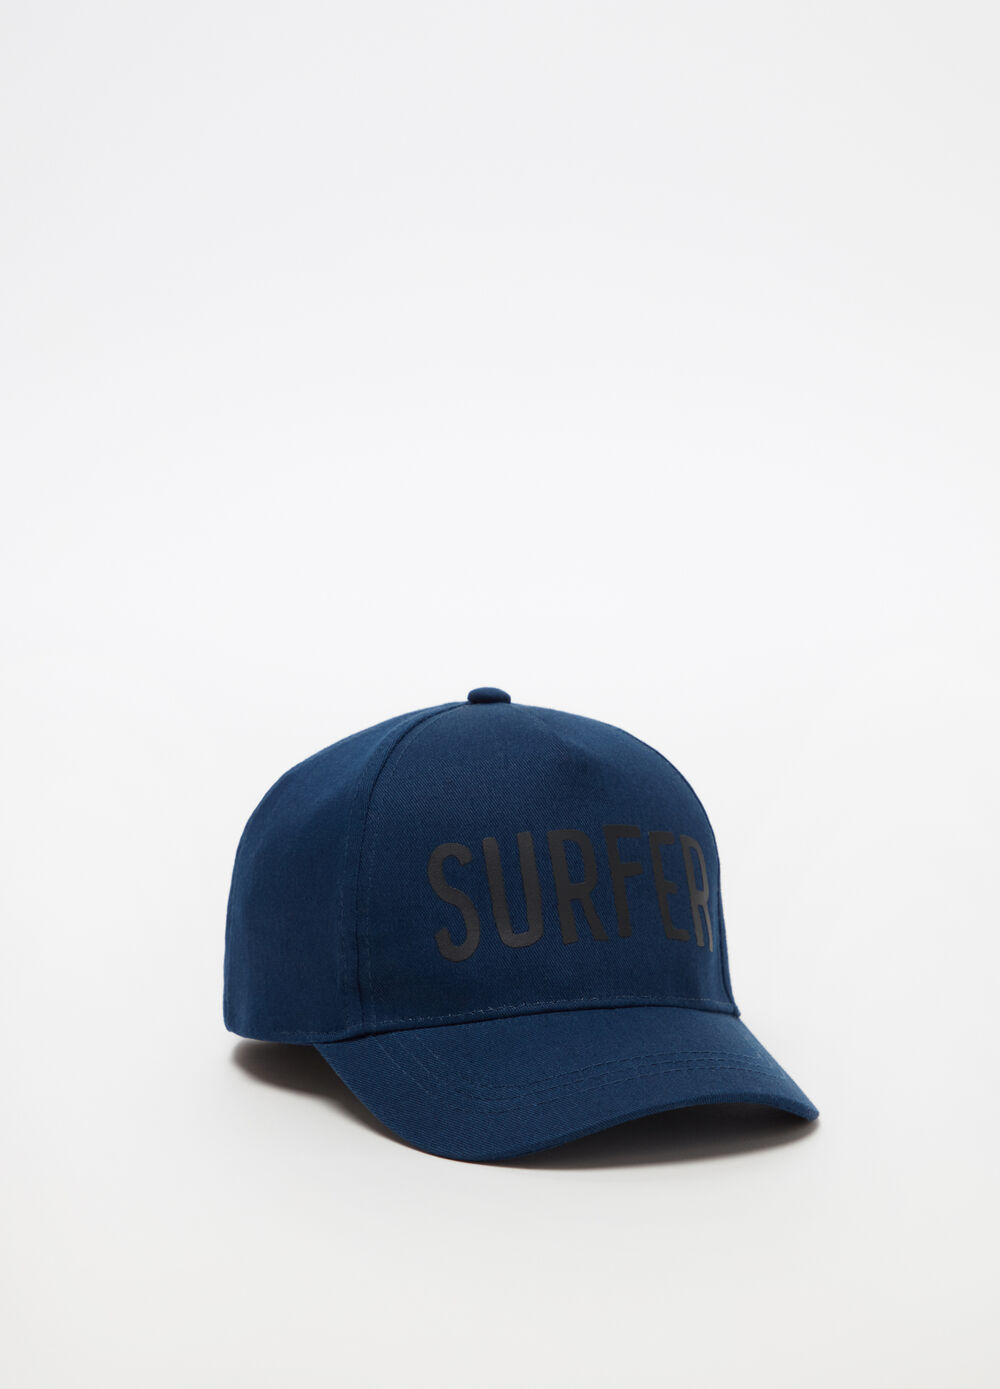 Cotton baseball cap with surf print